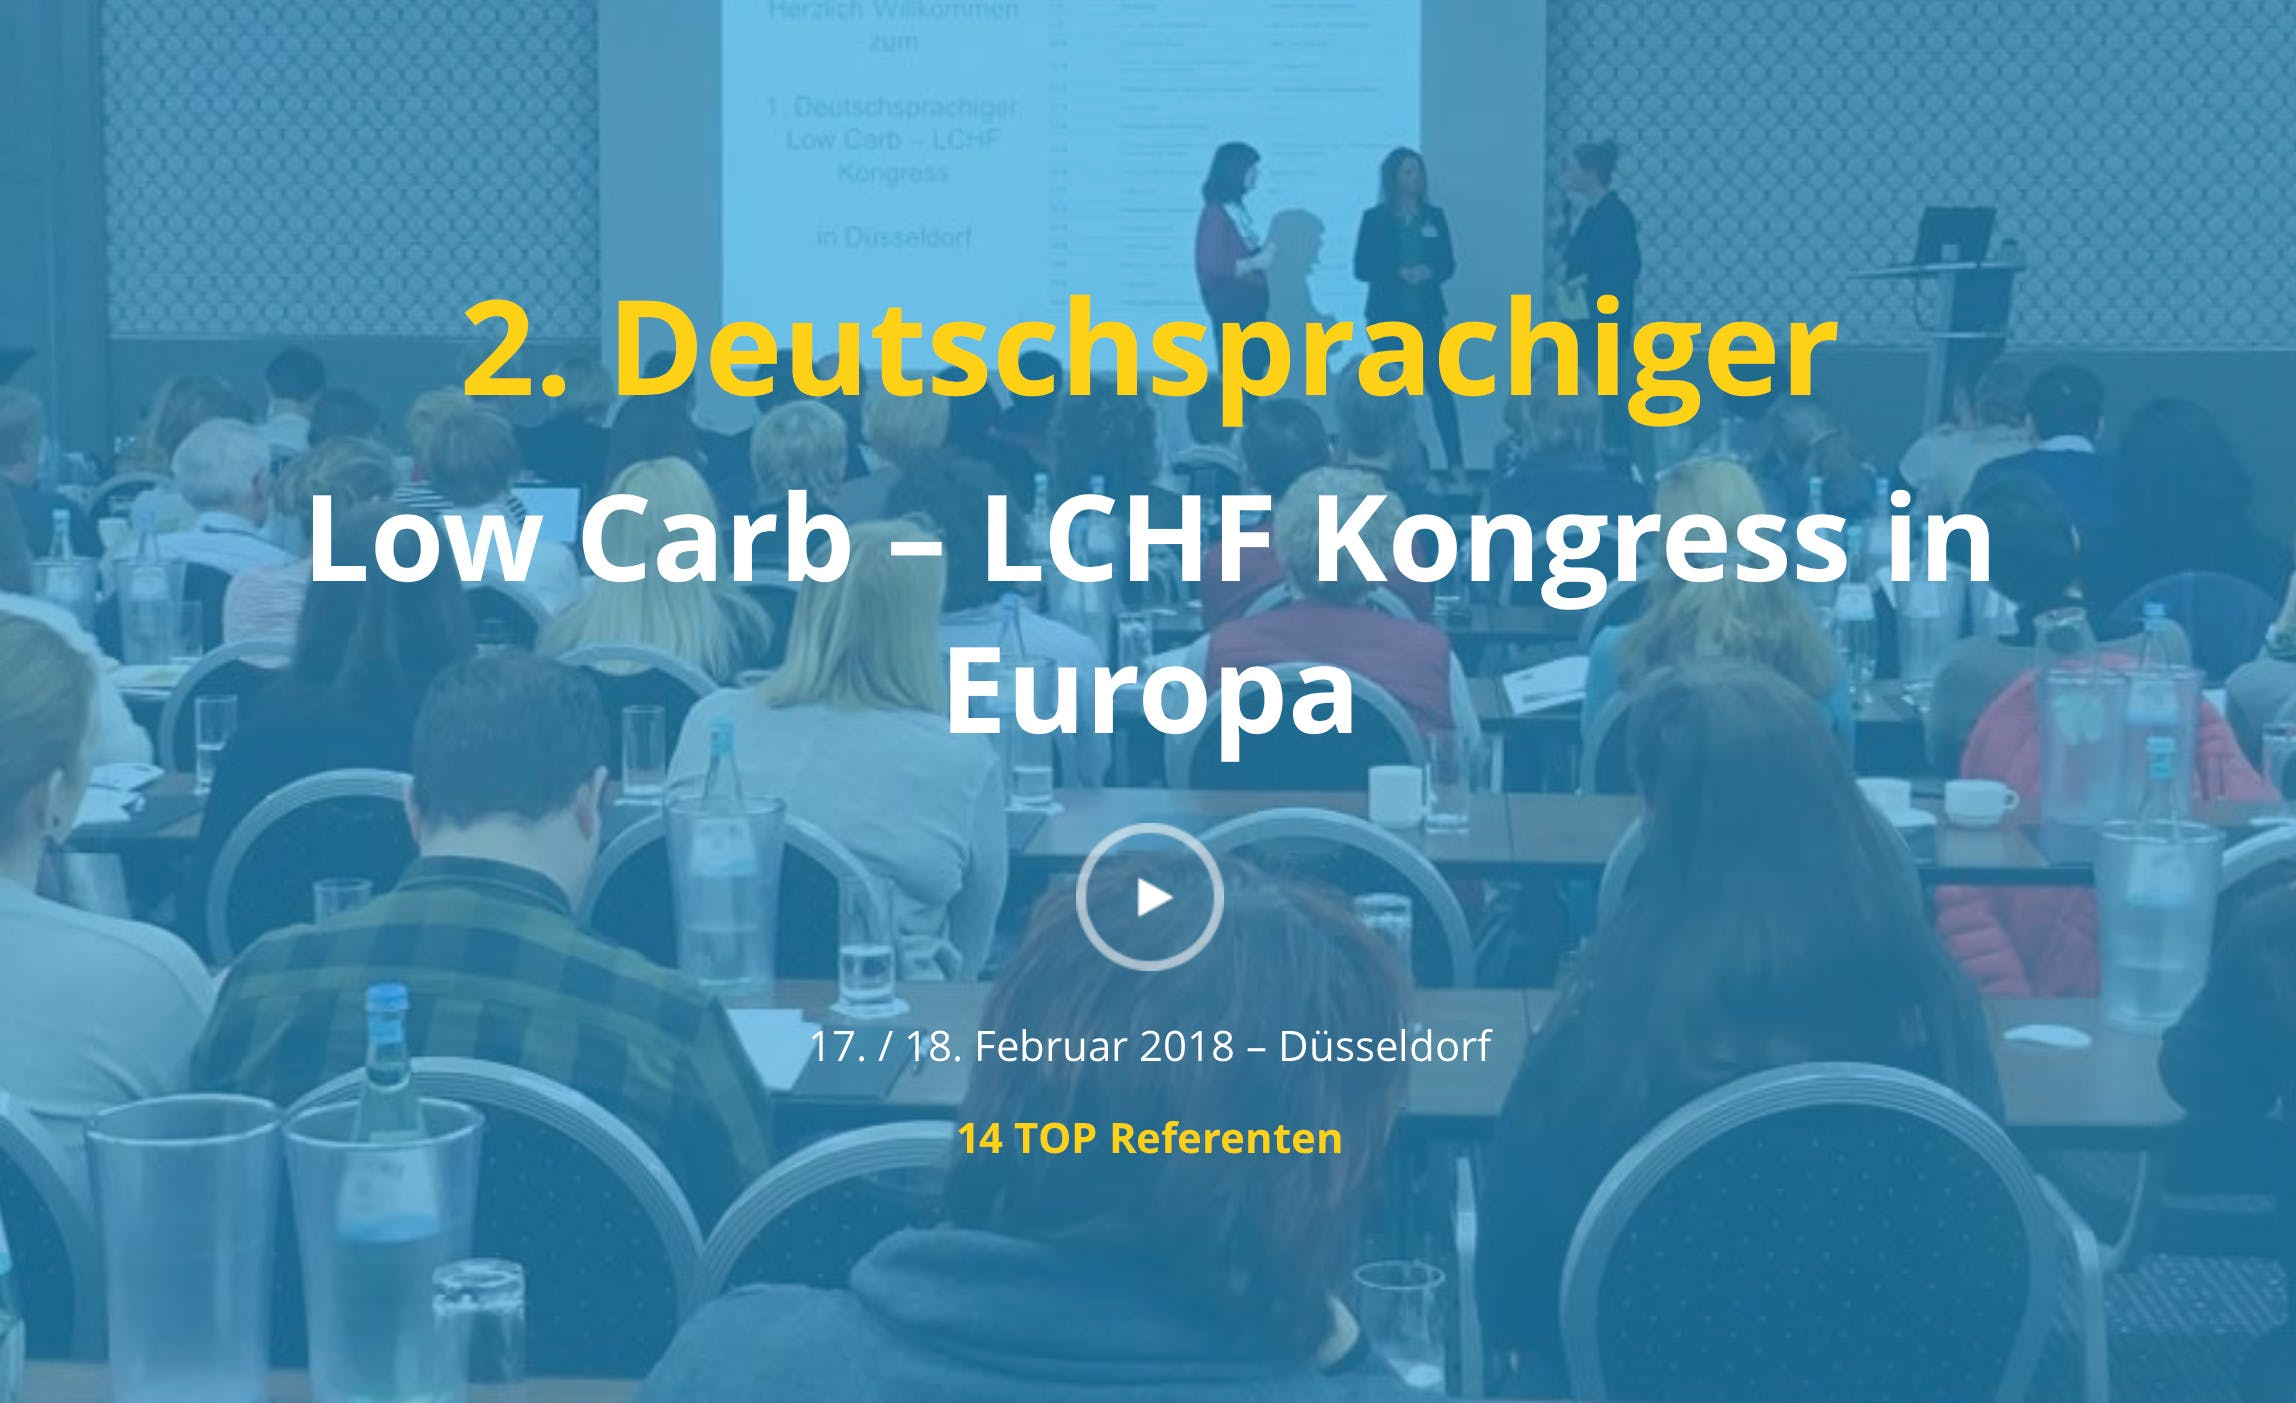 LCHFkongress